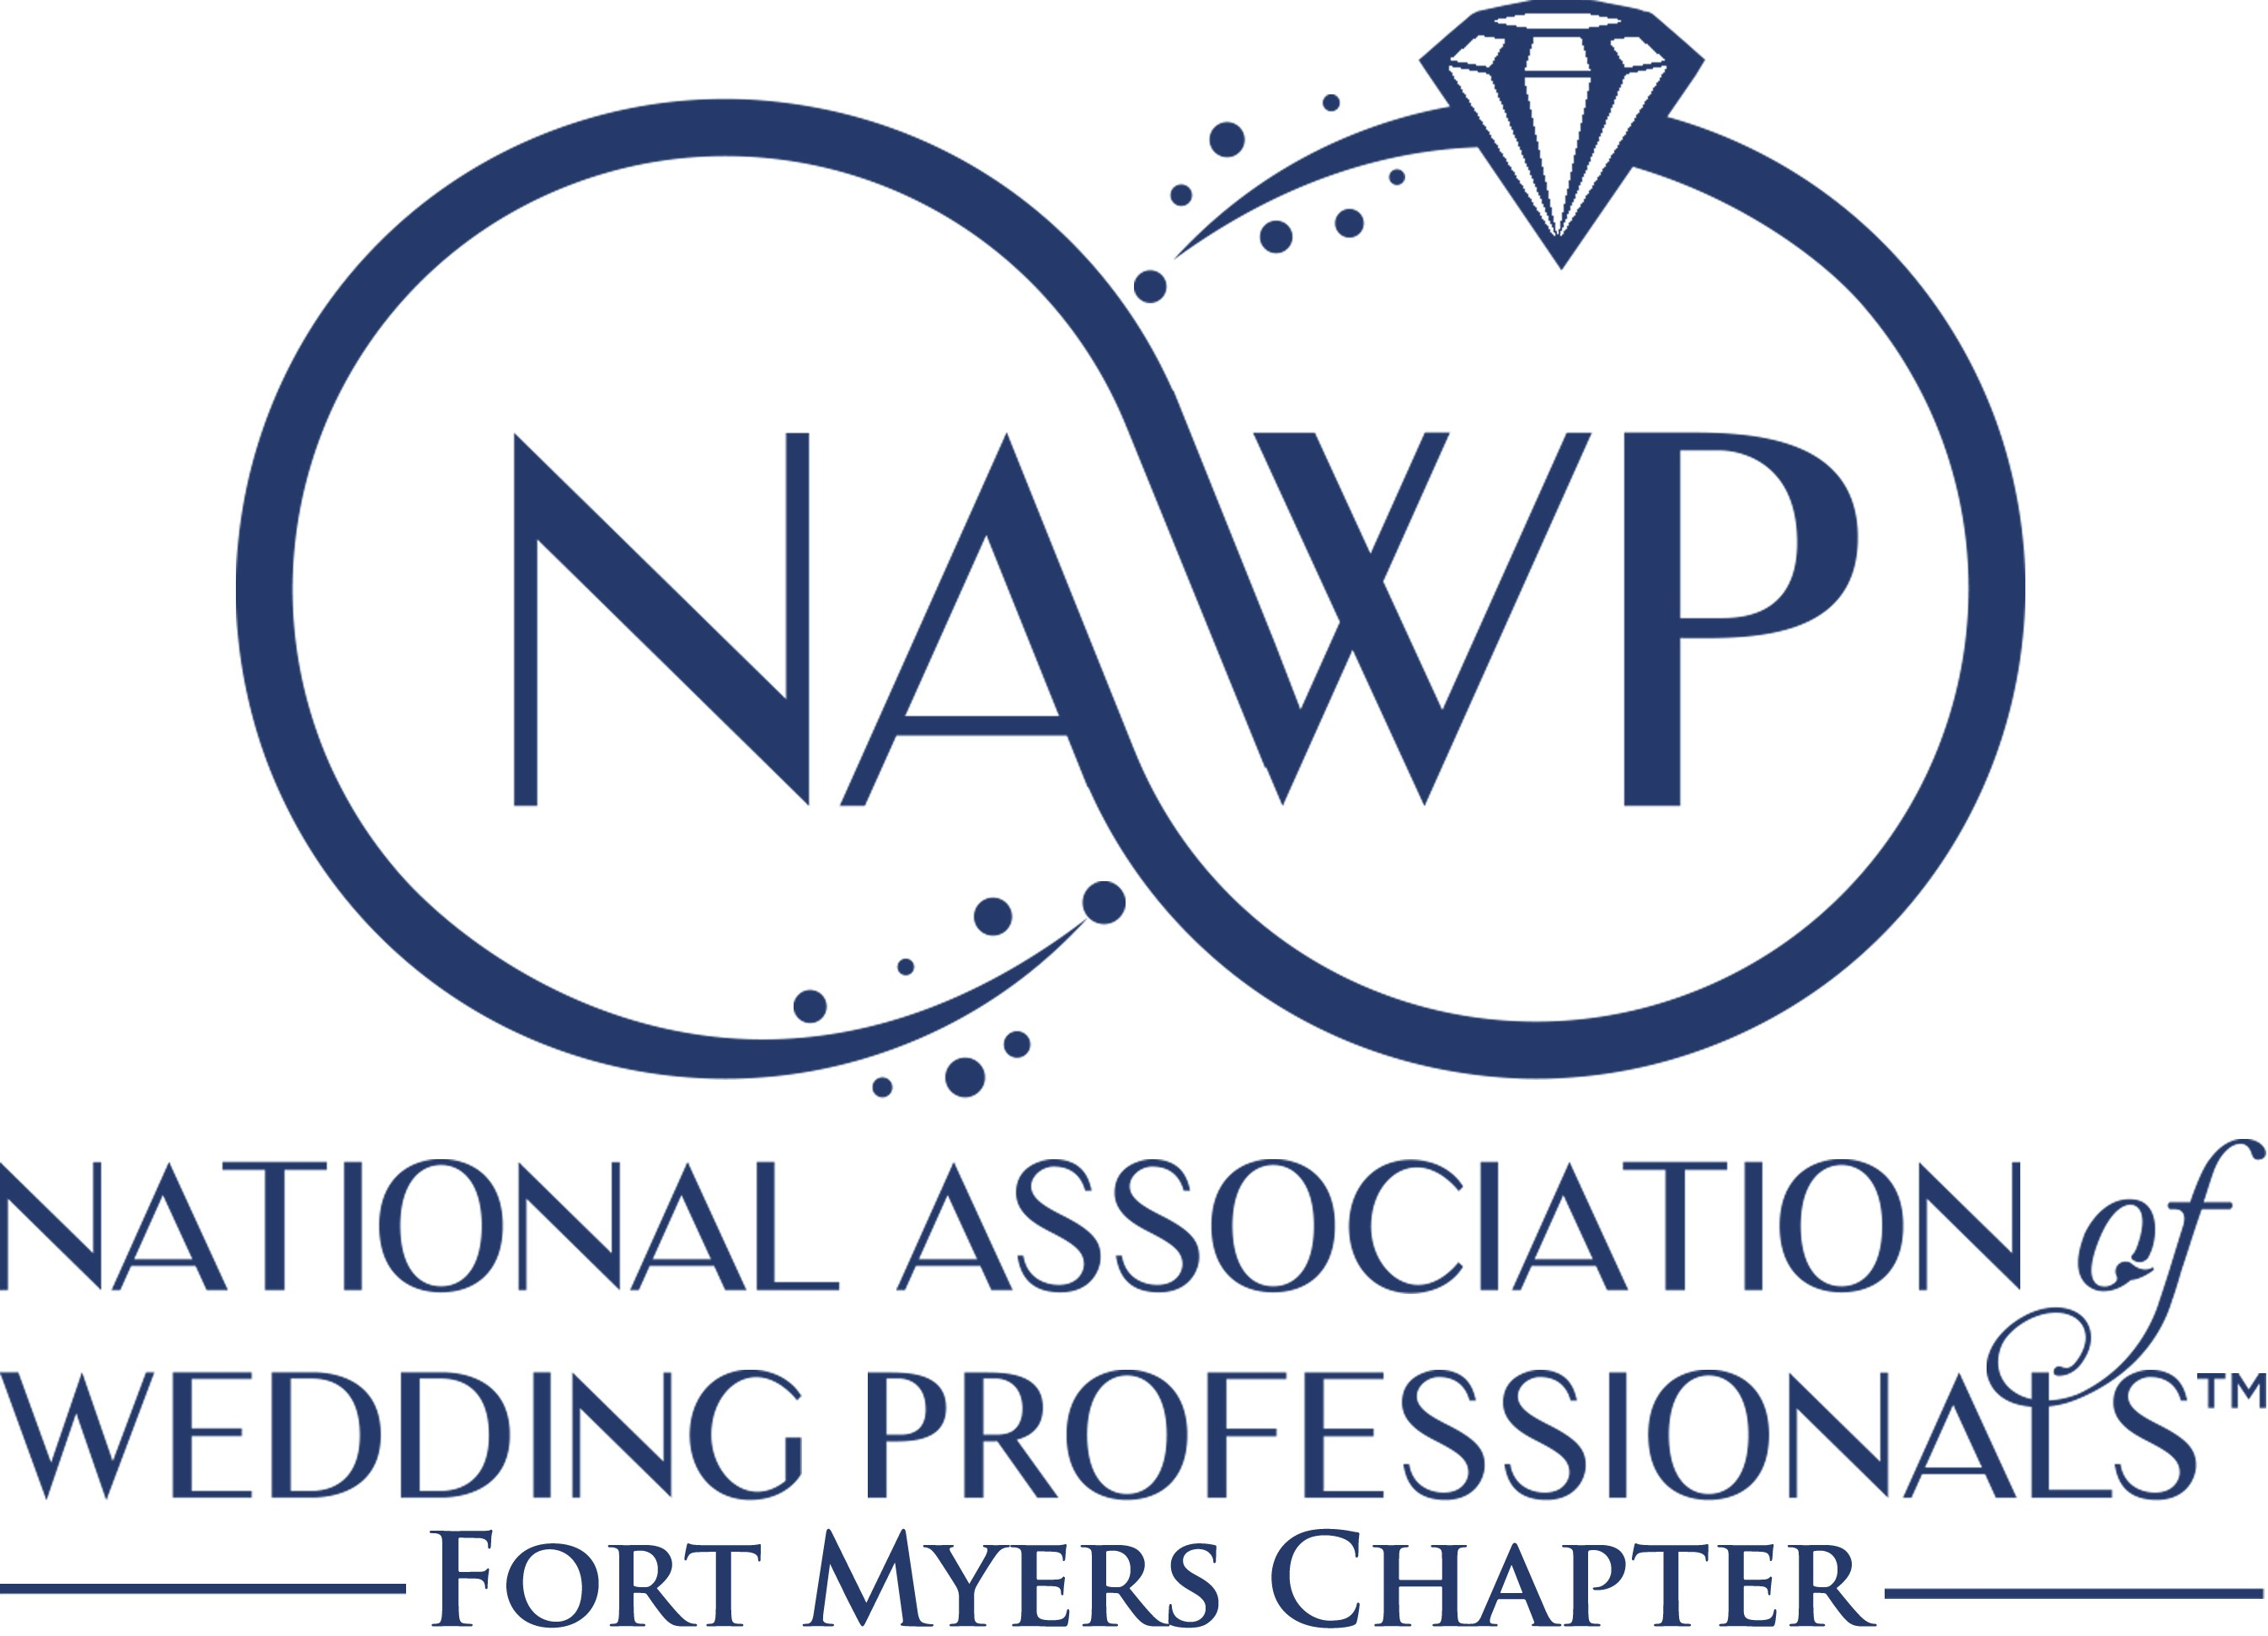 National Association of Wedding Professionals - Fort Myers Chapter